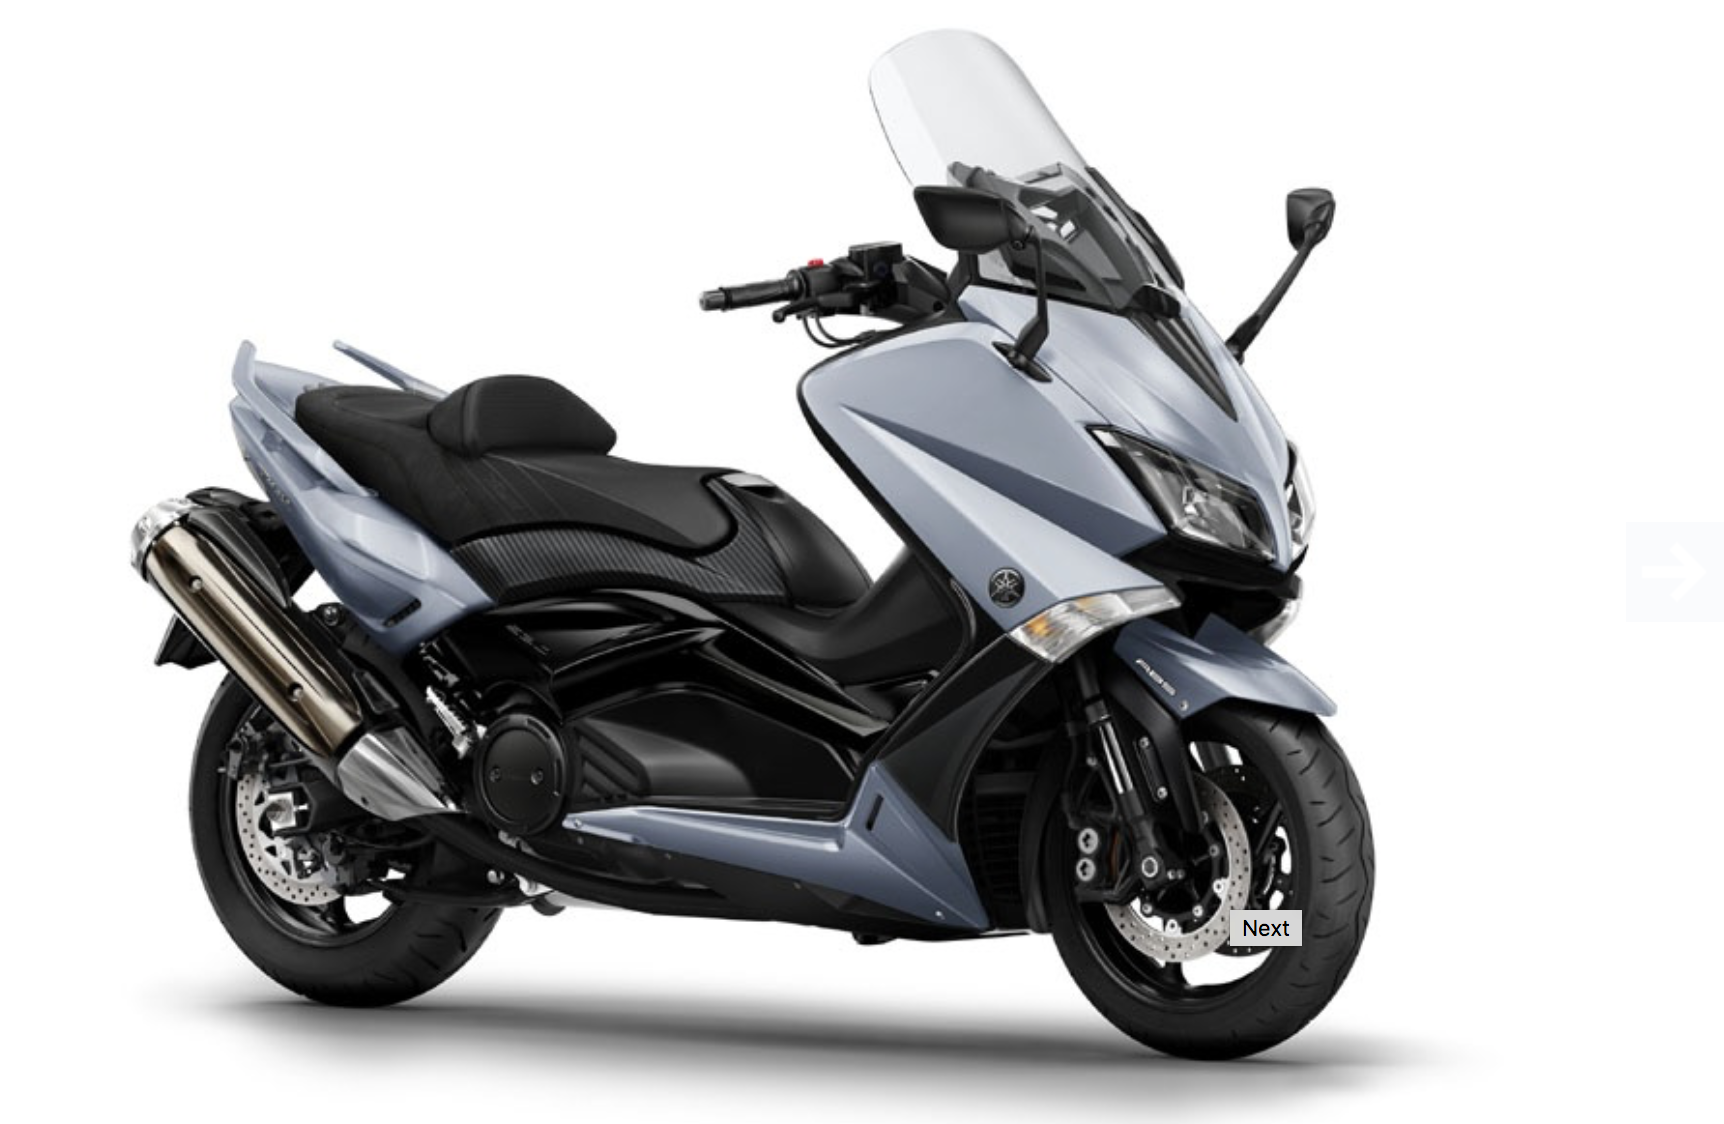 quel scooter yamaha tmax 2017 choisir standard dx ou sx. Black Bedroom Furniture Sets. Home Design Ideas